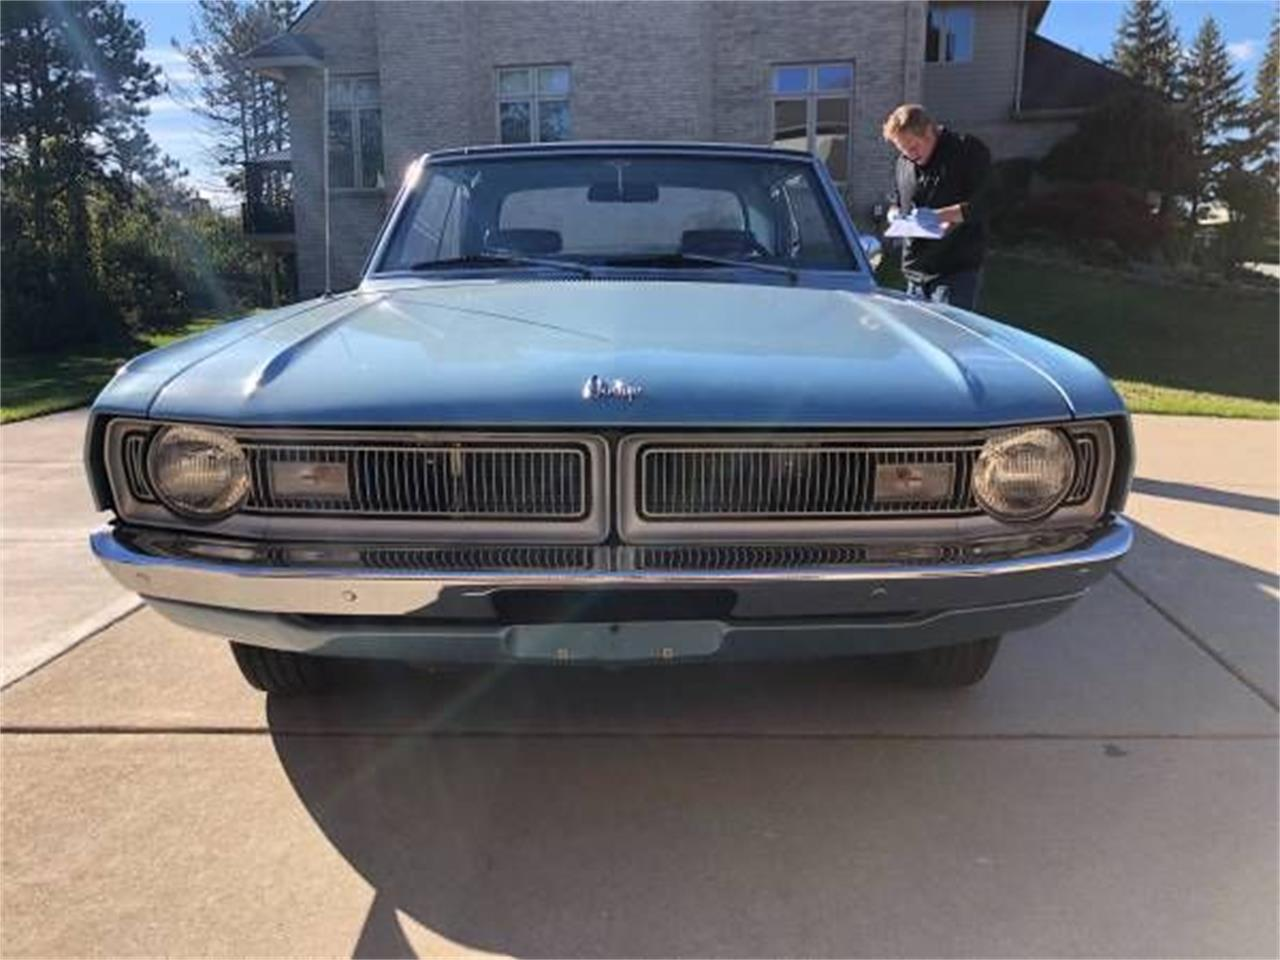 Large Picture of 1970 Dart located in Cadillac Michigan - $15,995.00 Offered by Classic Car Deals - PULB